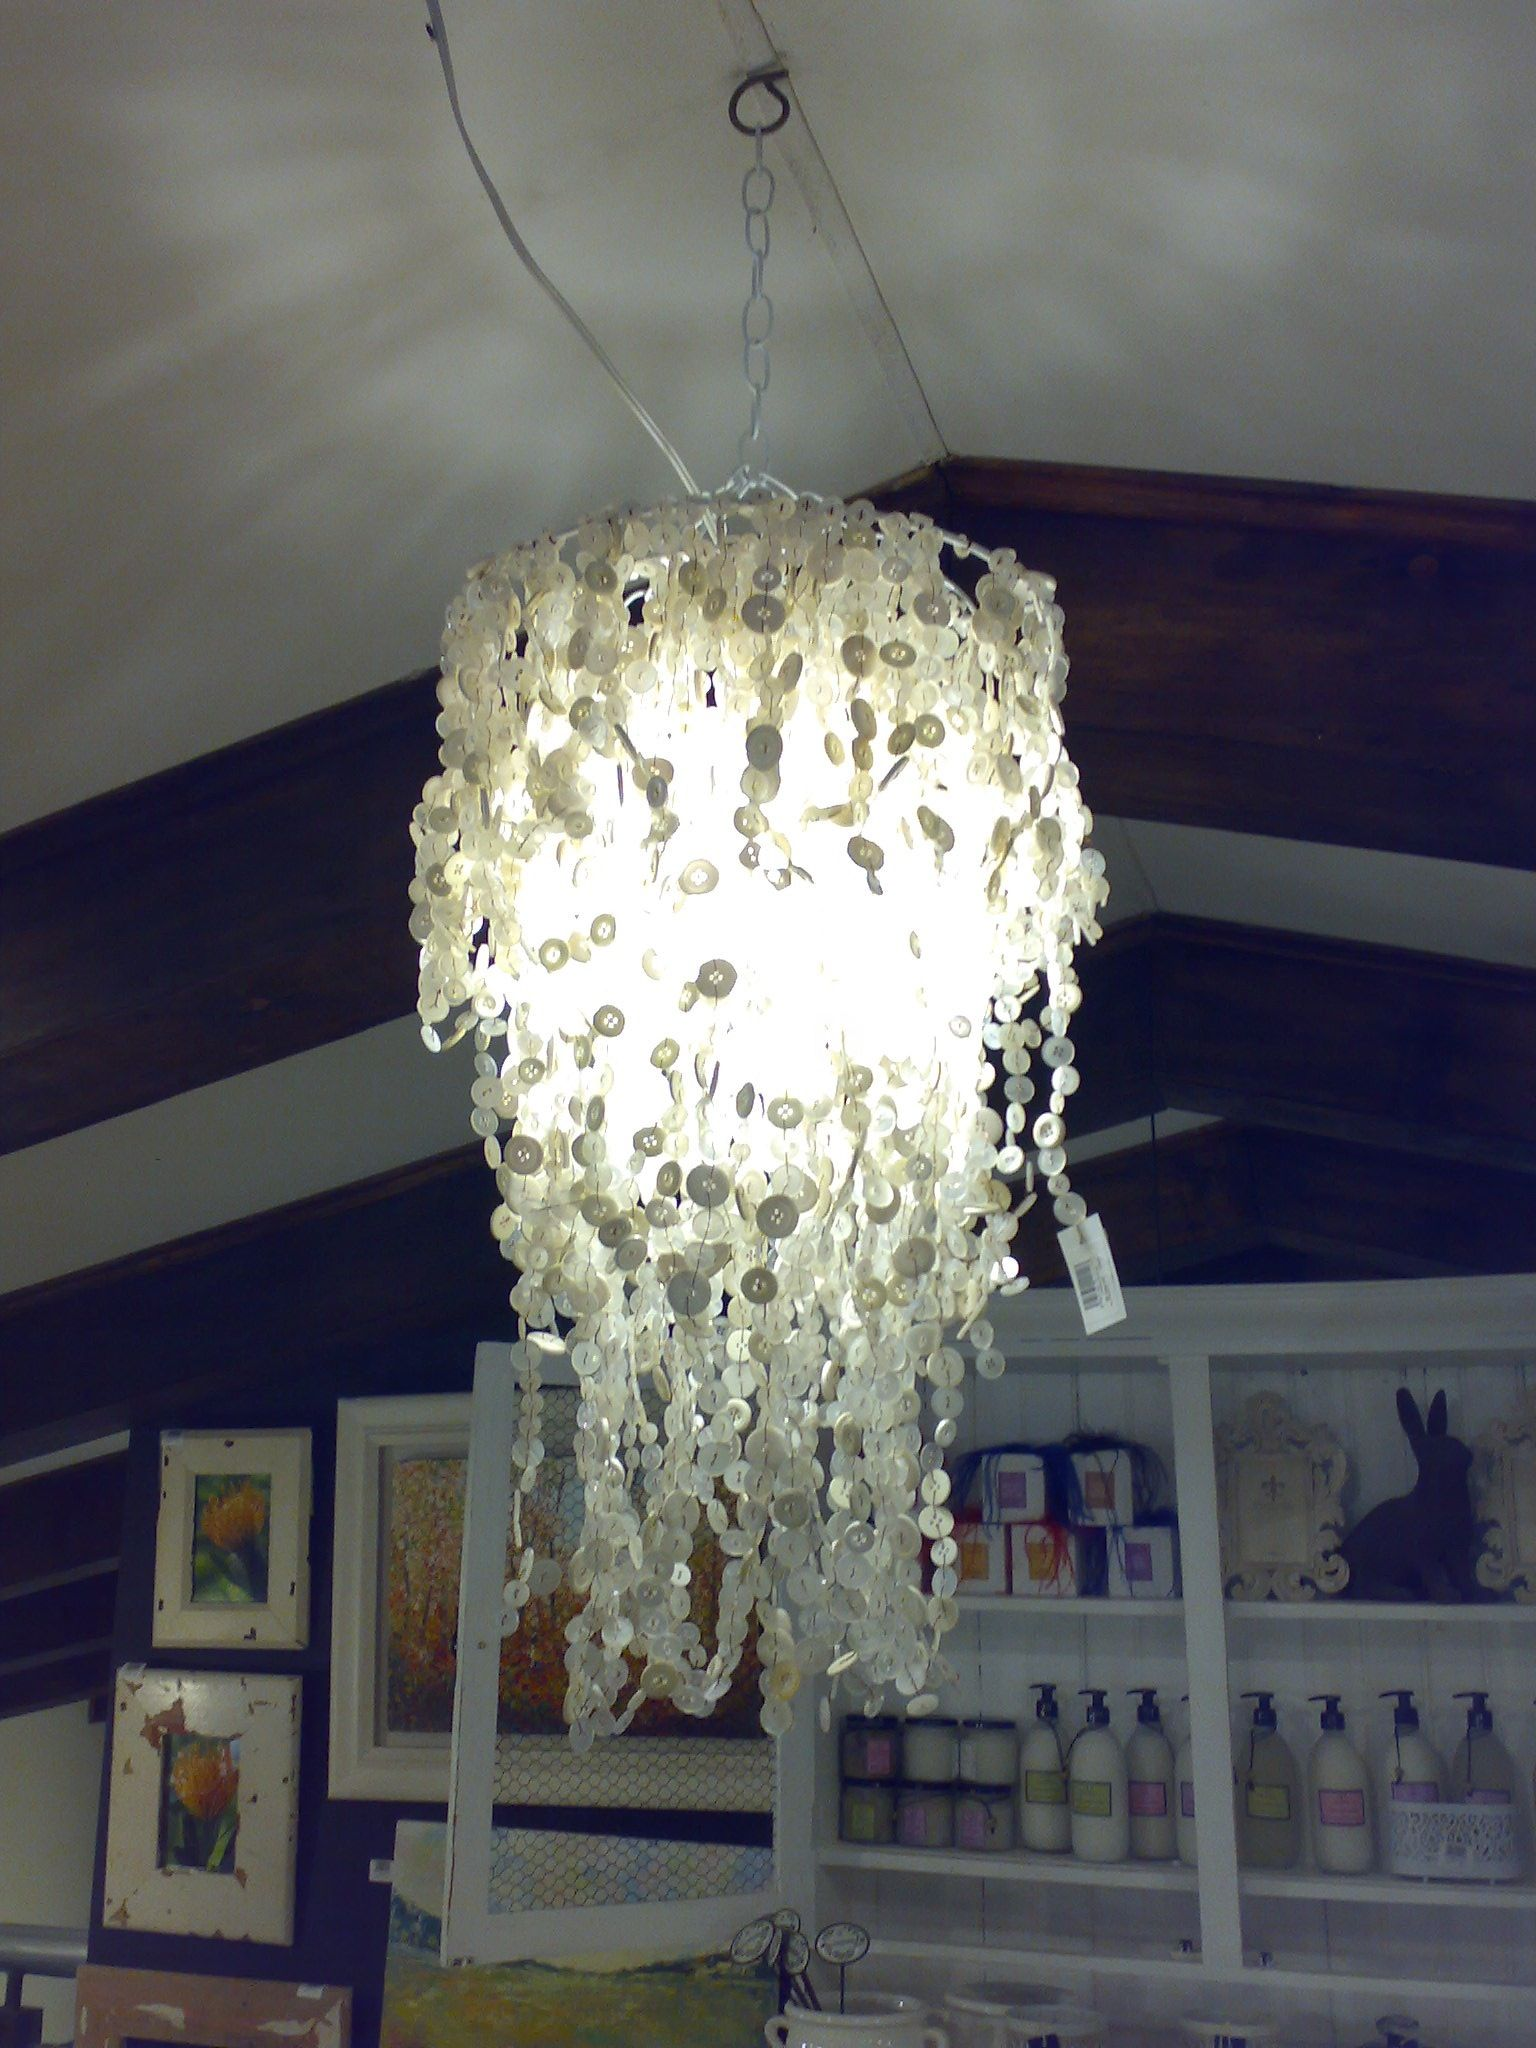 Pinned by kaatjebee Beautiful chandelier made with all kinds of white buttons in three rings, Irene Farm, Centurion, SA